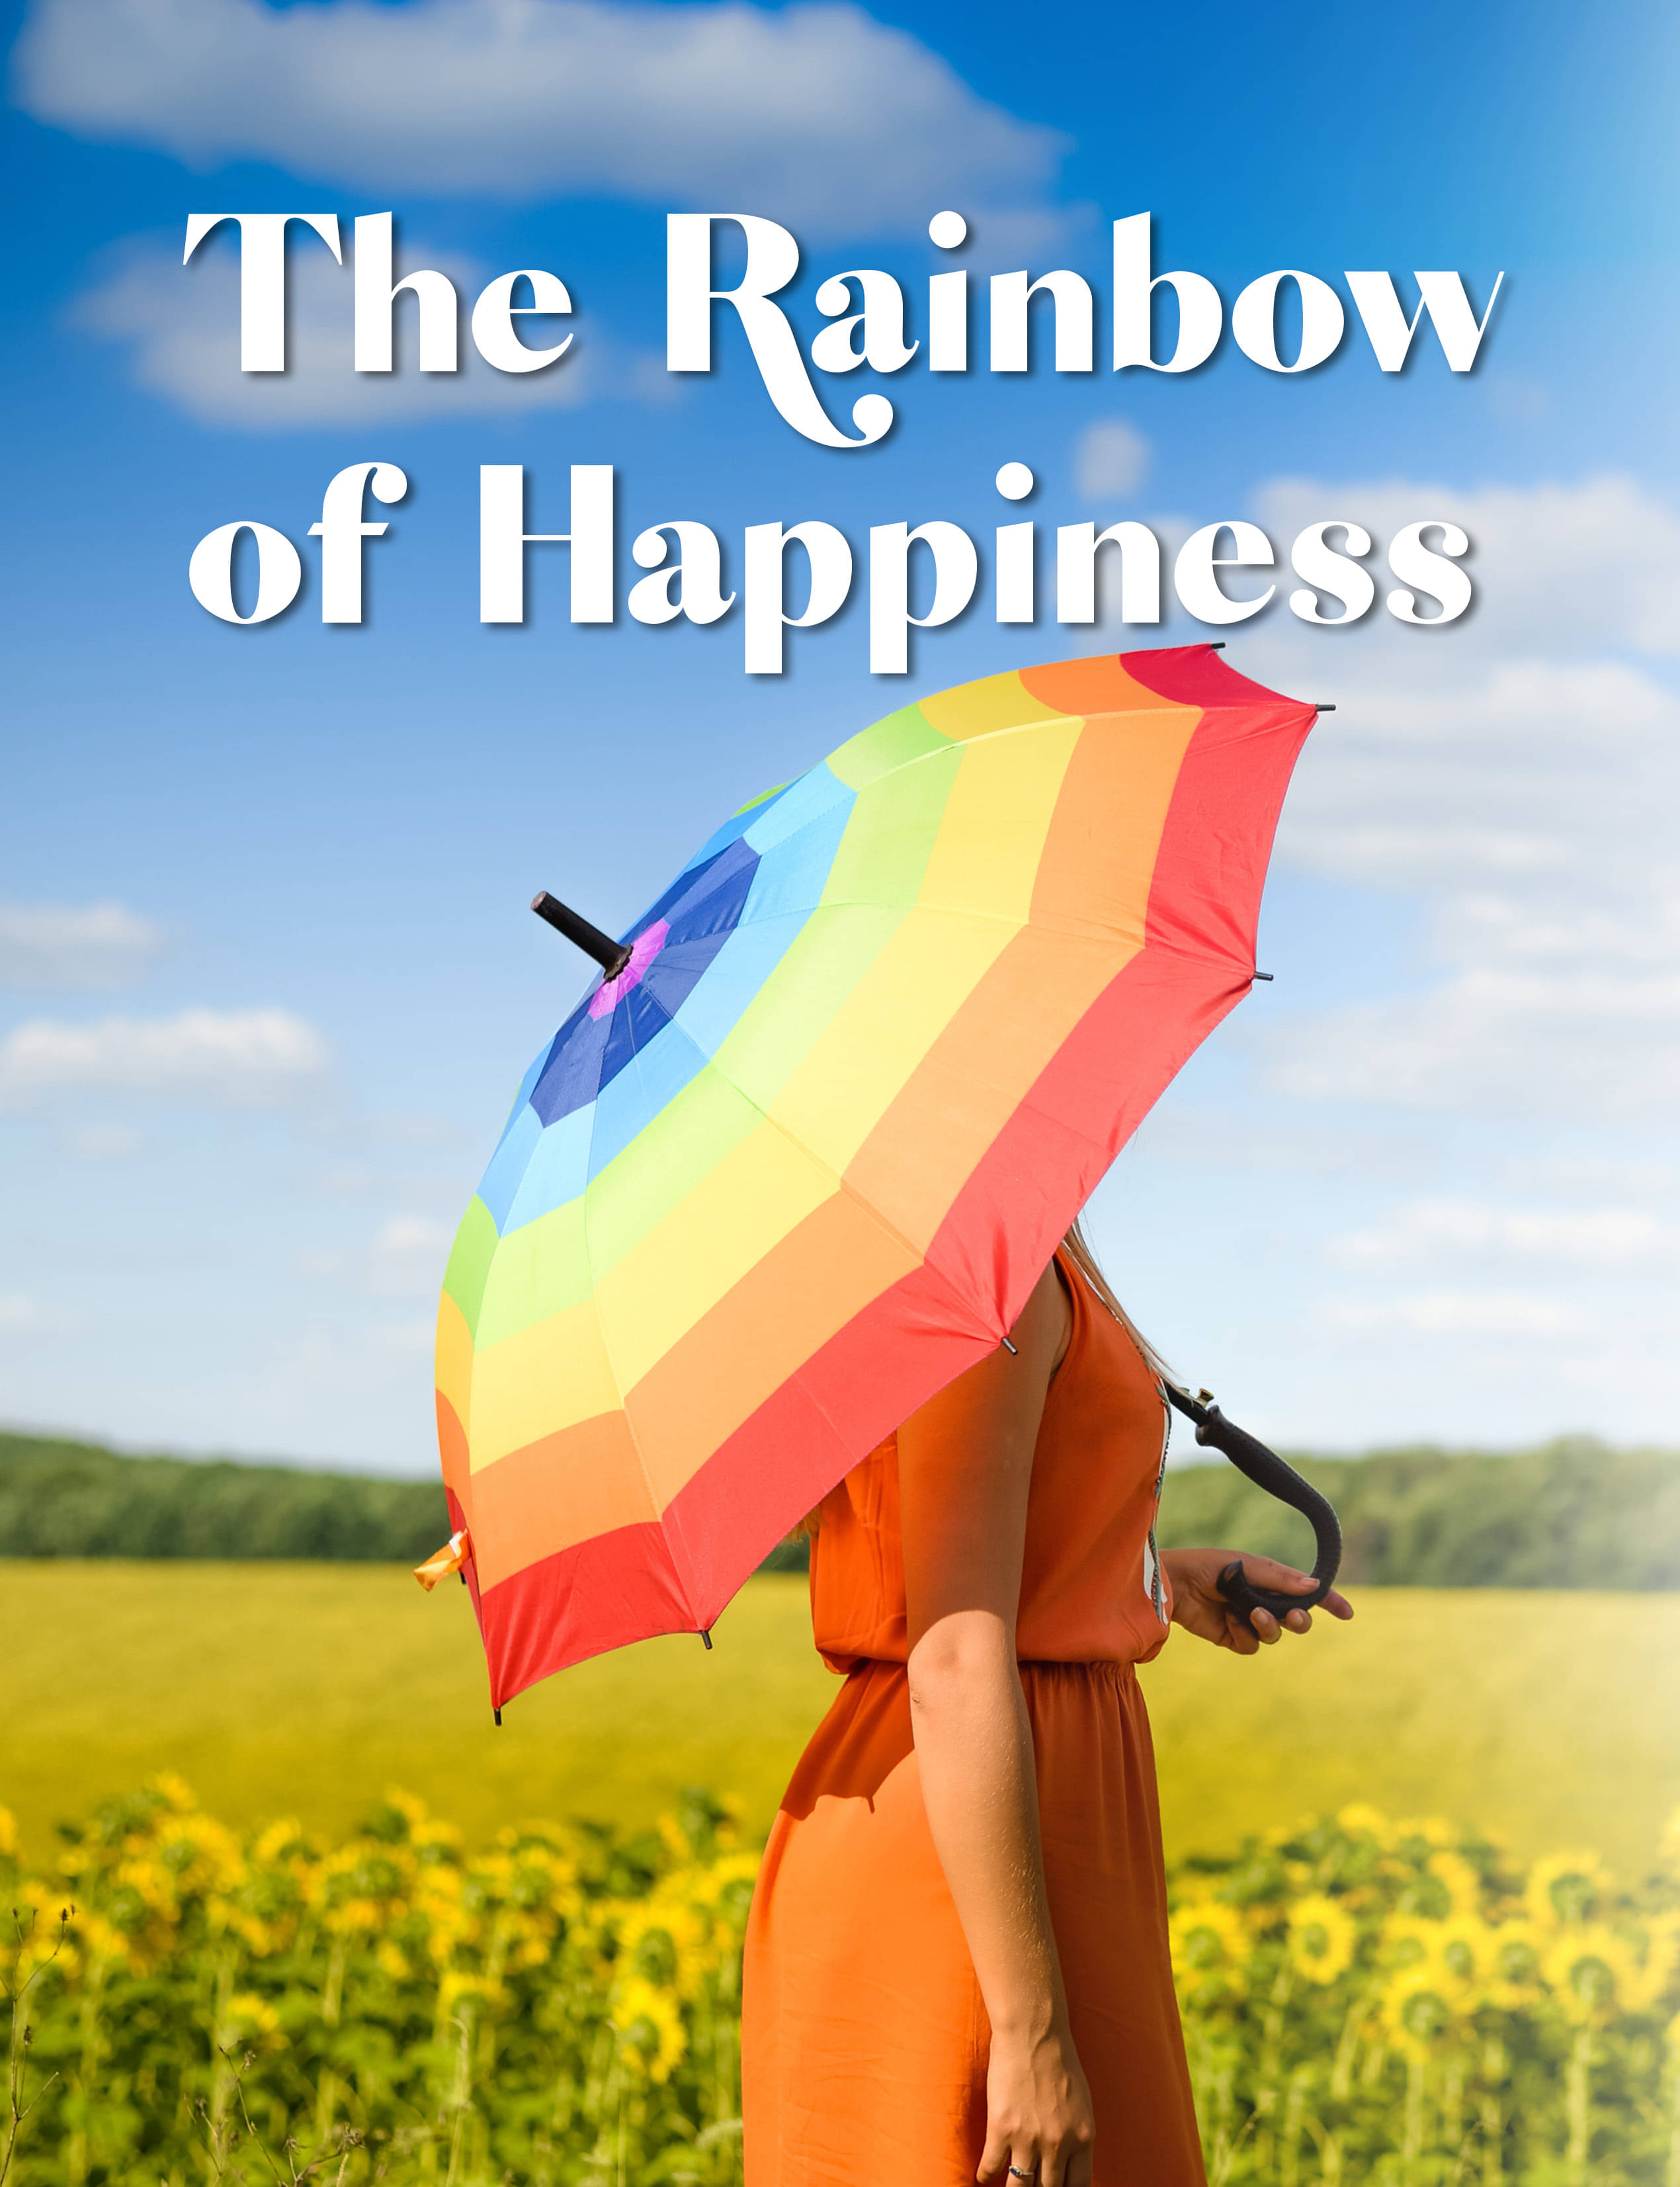 The Rainbow of Happiness